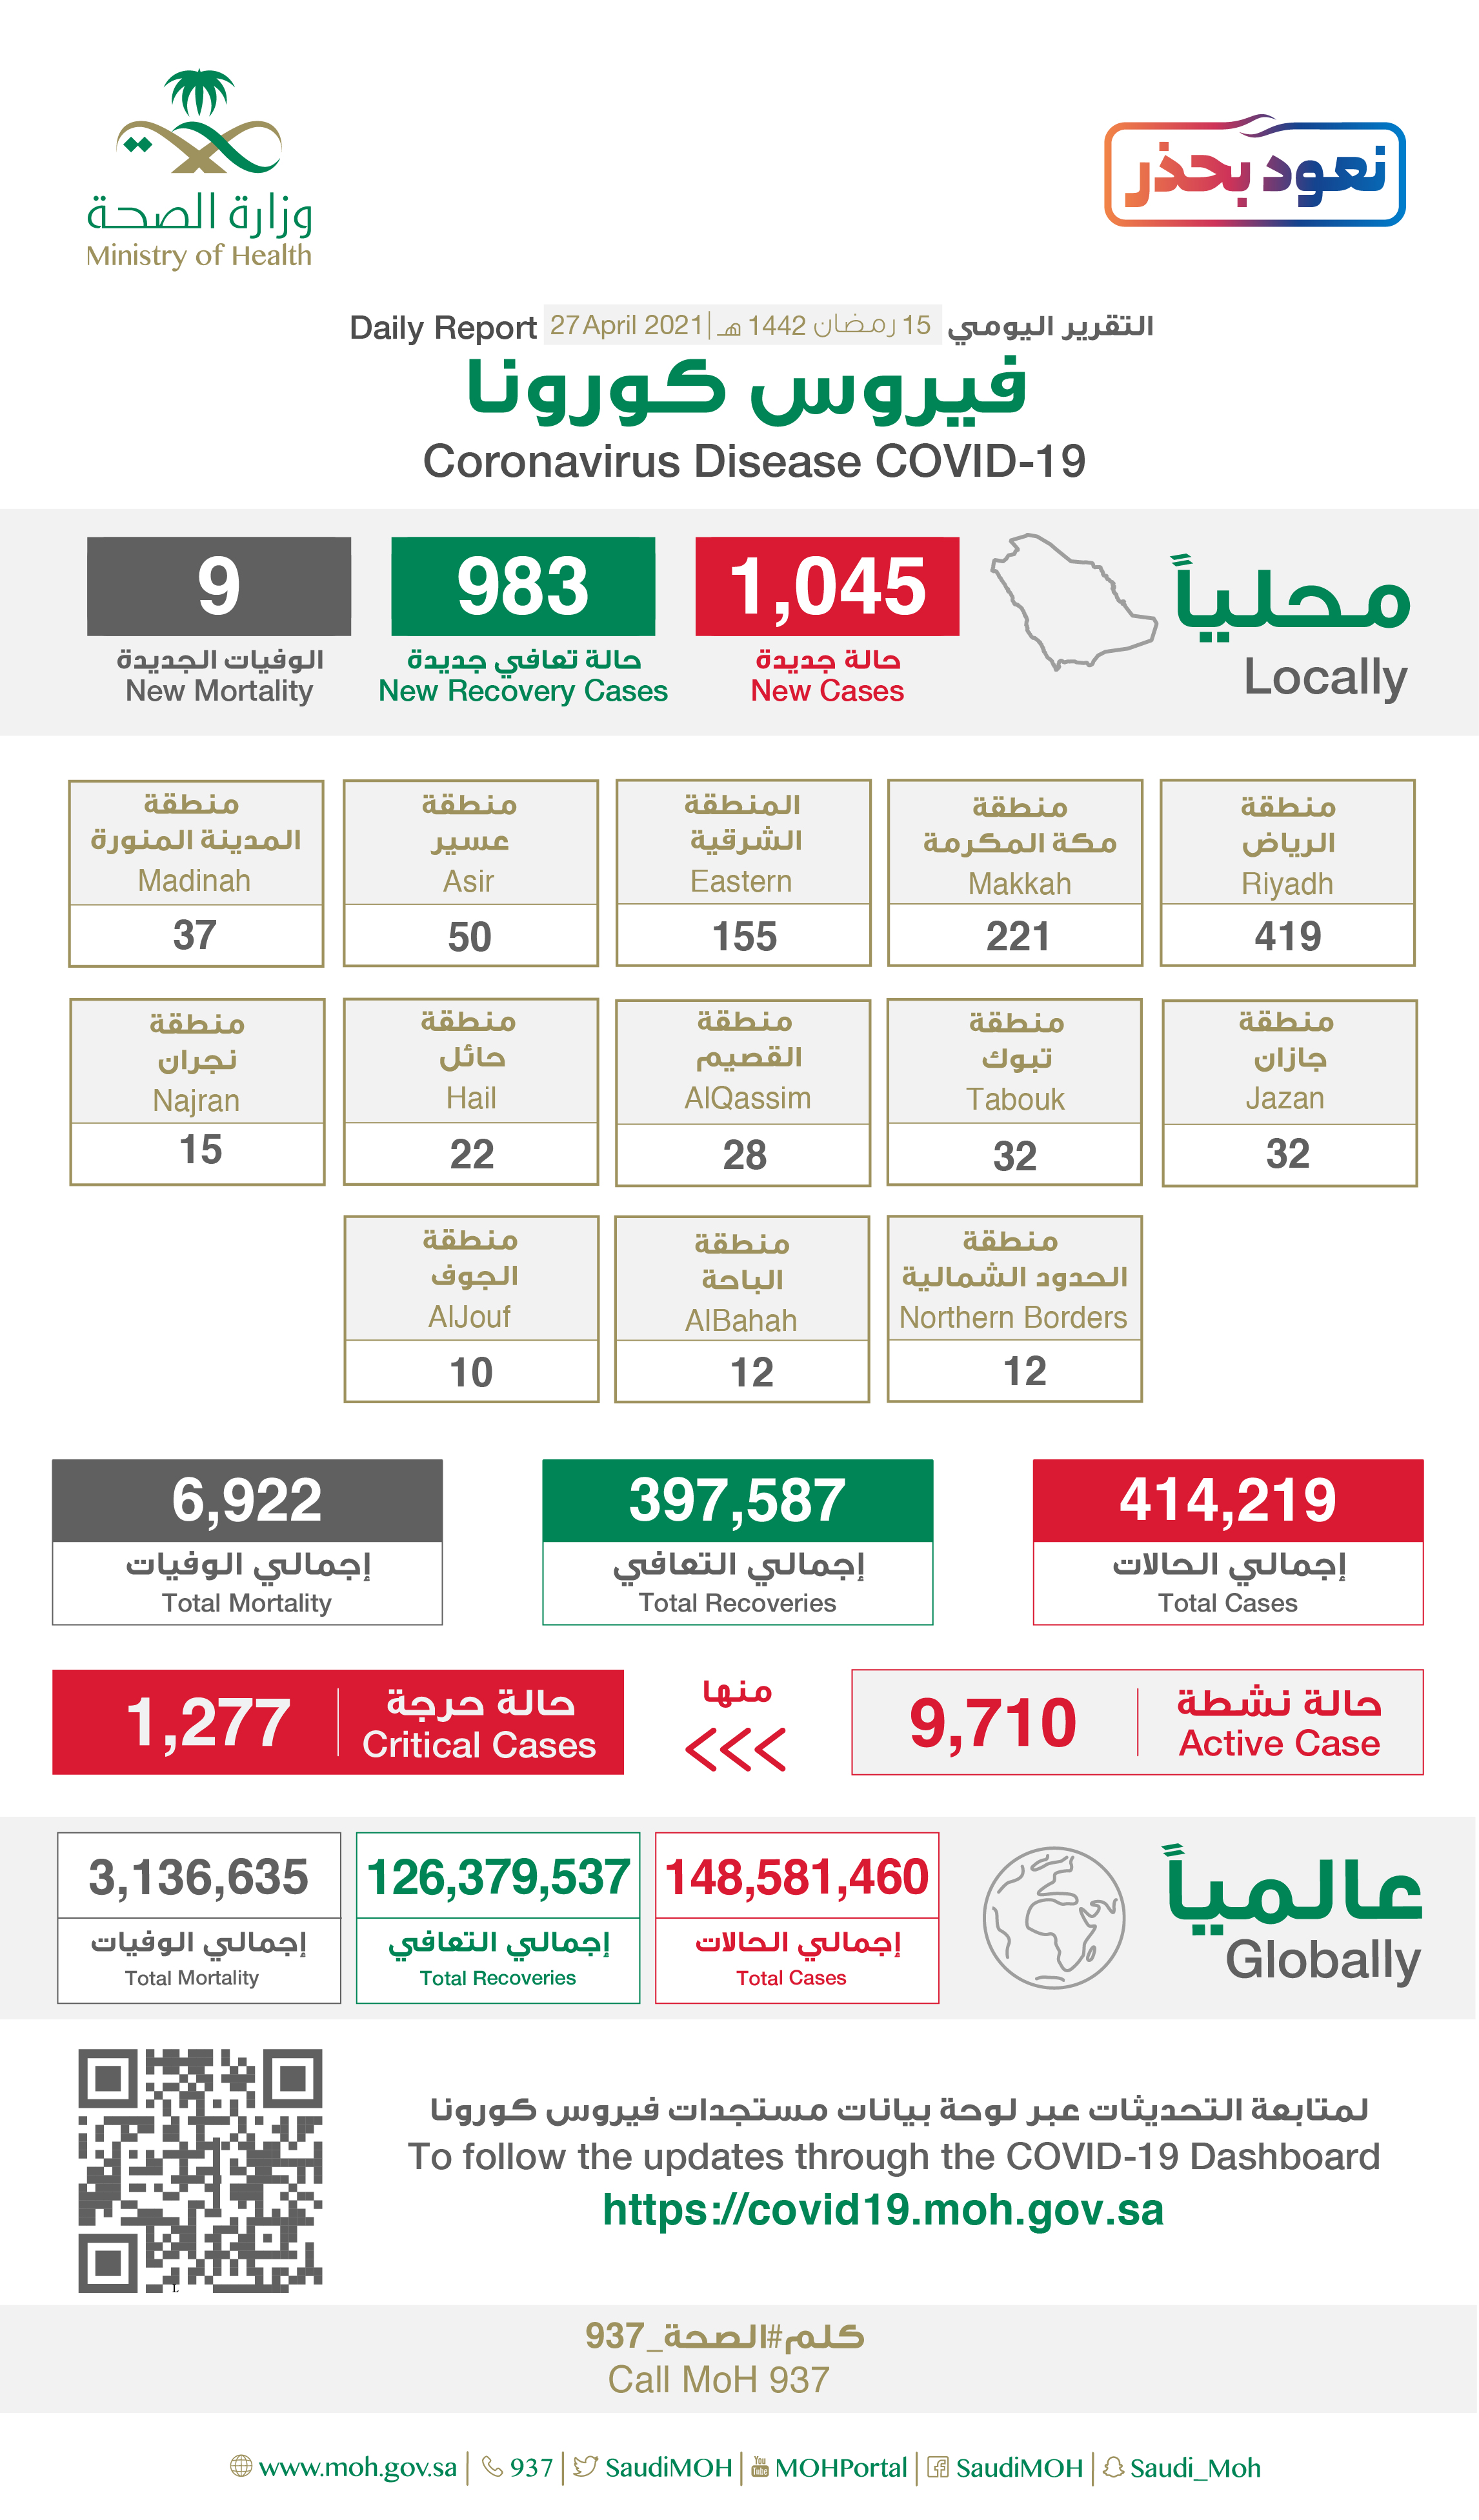 Saudi Arabia Coronavirus : Total Cases :414,219 , New Cases : 1,045 , Cured : 397,587 , Deaths: 6,922, Active Cases : 9,710